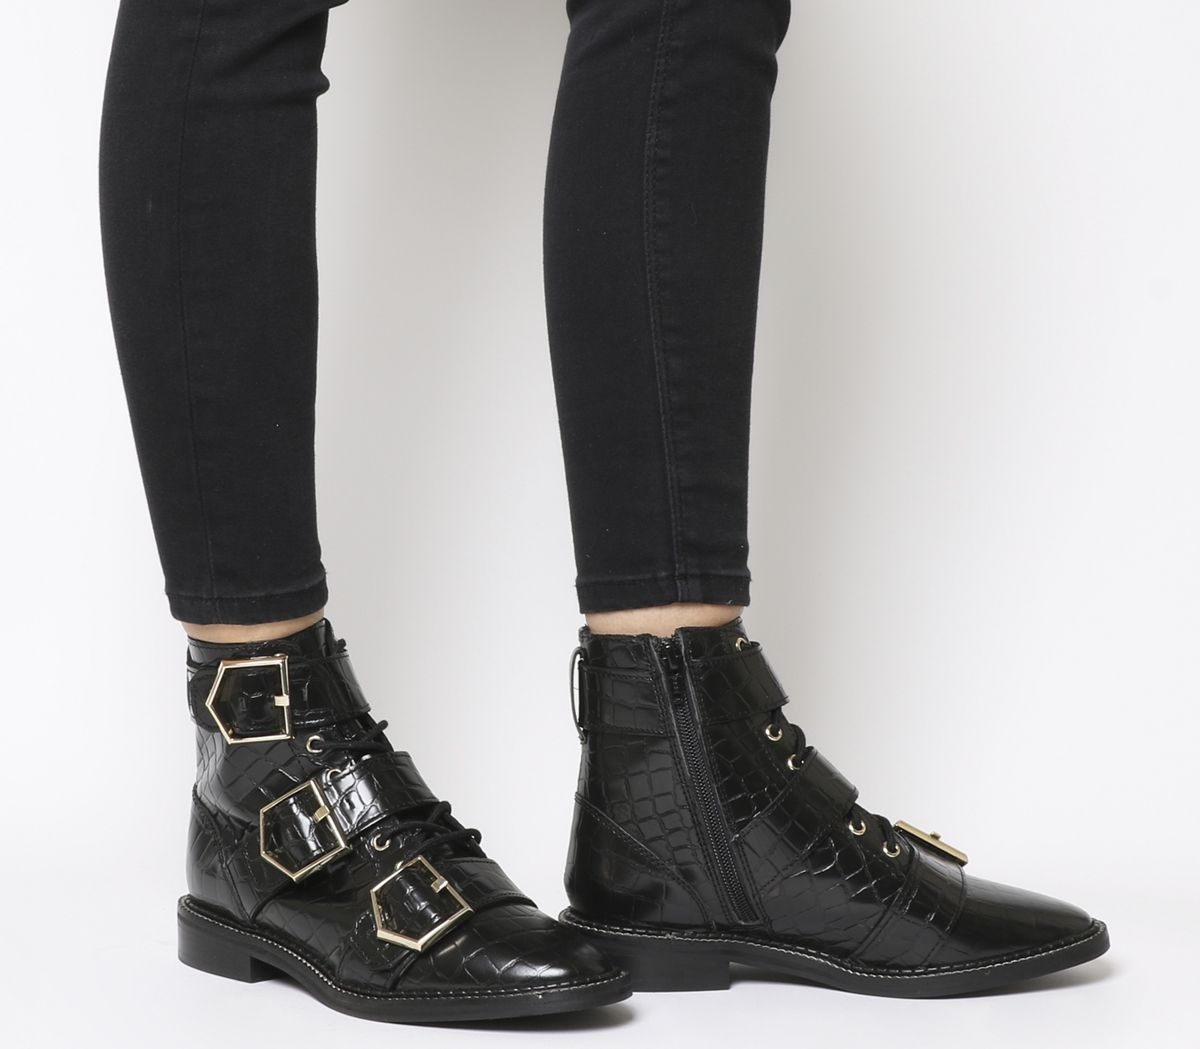 dca547d1ad Office Armory Buckle Lace Up Boots Black Croc Leather Gold Hardware ...